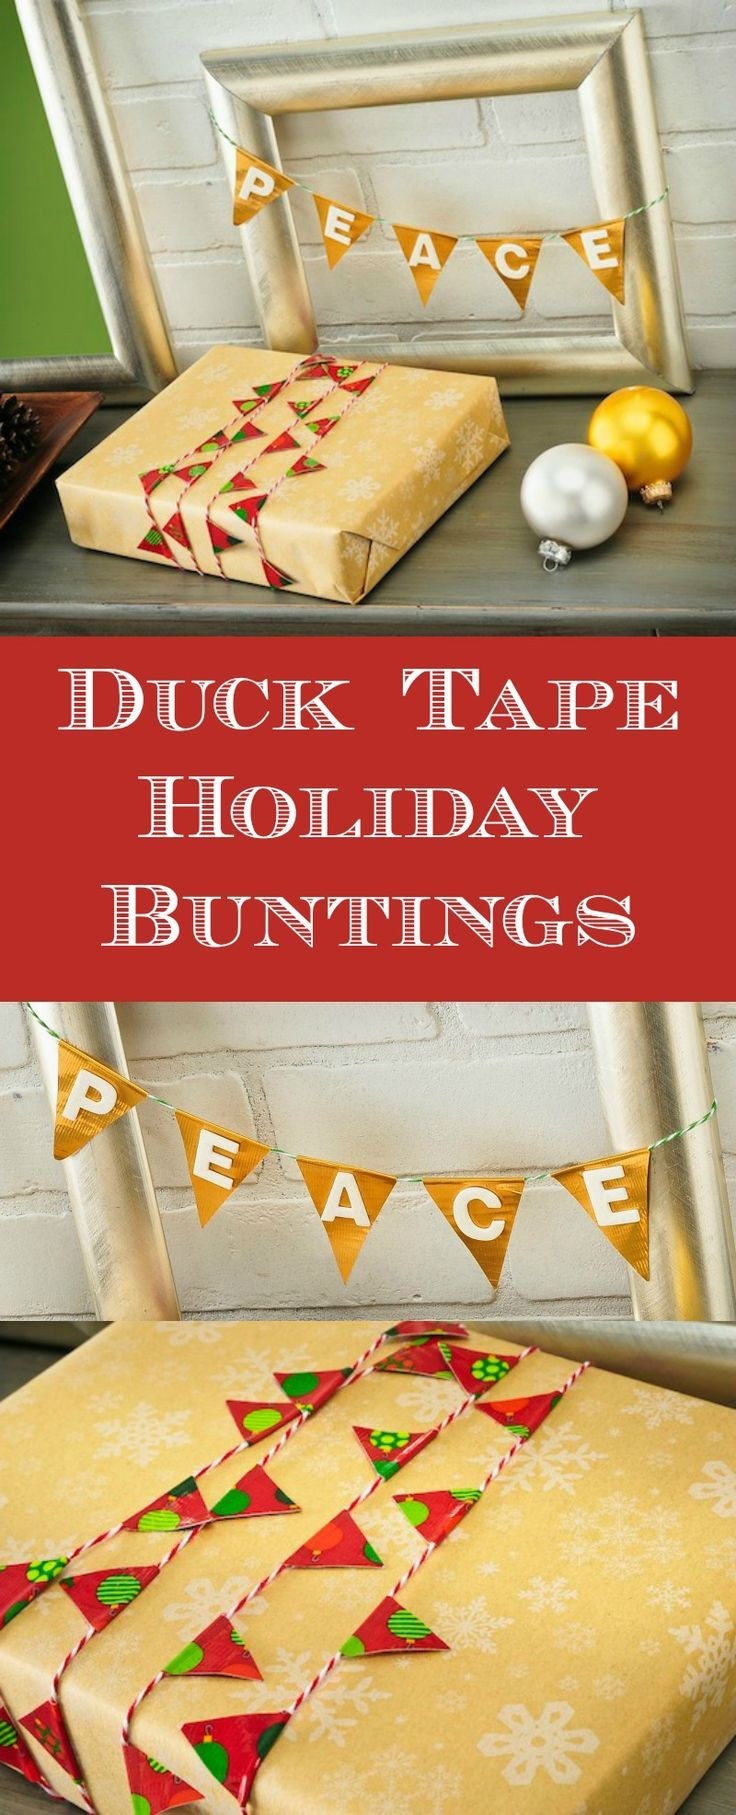 Are you as big of a fan of duck tape crafts as I am? Make a Christmas bunting and gift wrap using very simple materials - these projects are so easy!